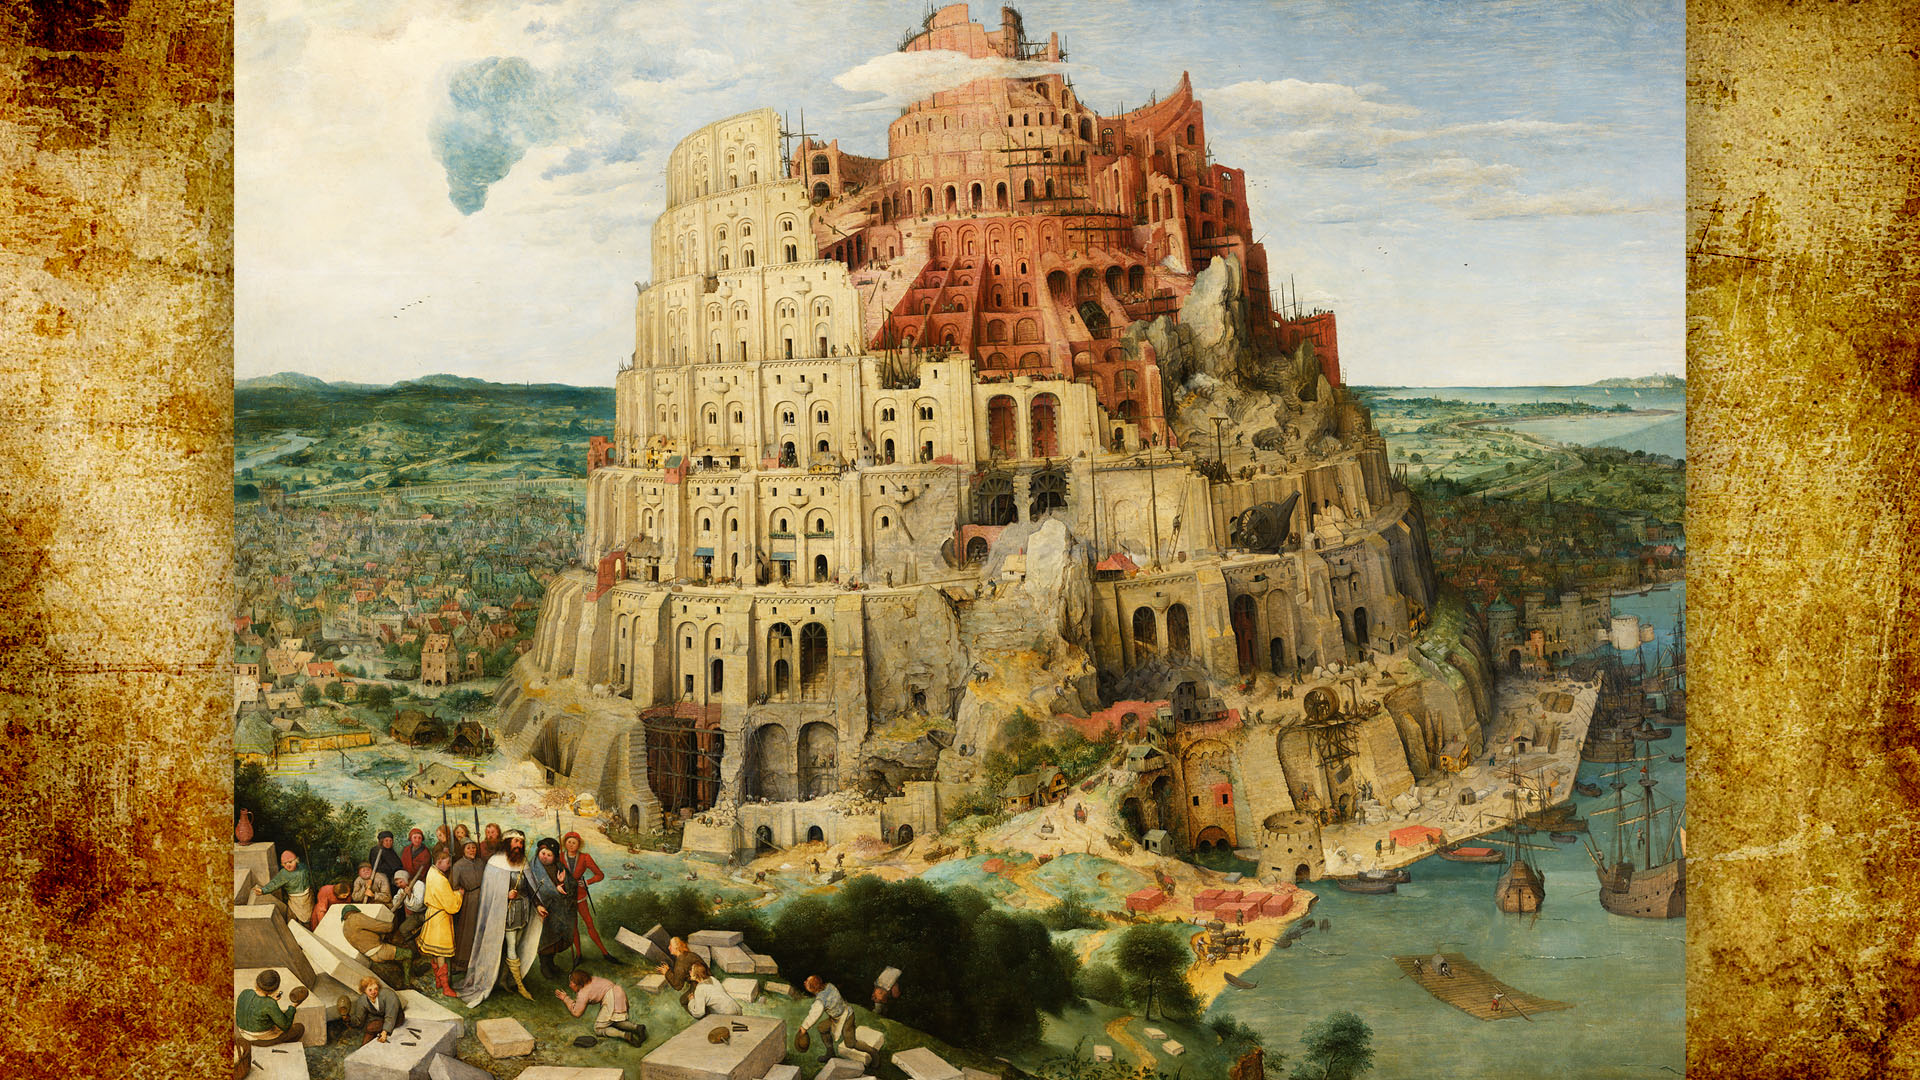 Pieter Bruegel - The Tower of Babel 1920x1080 2